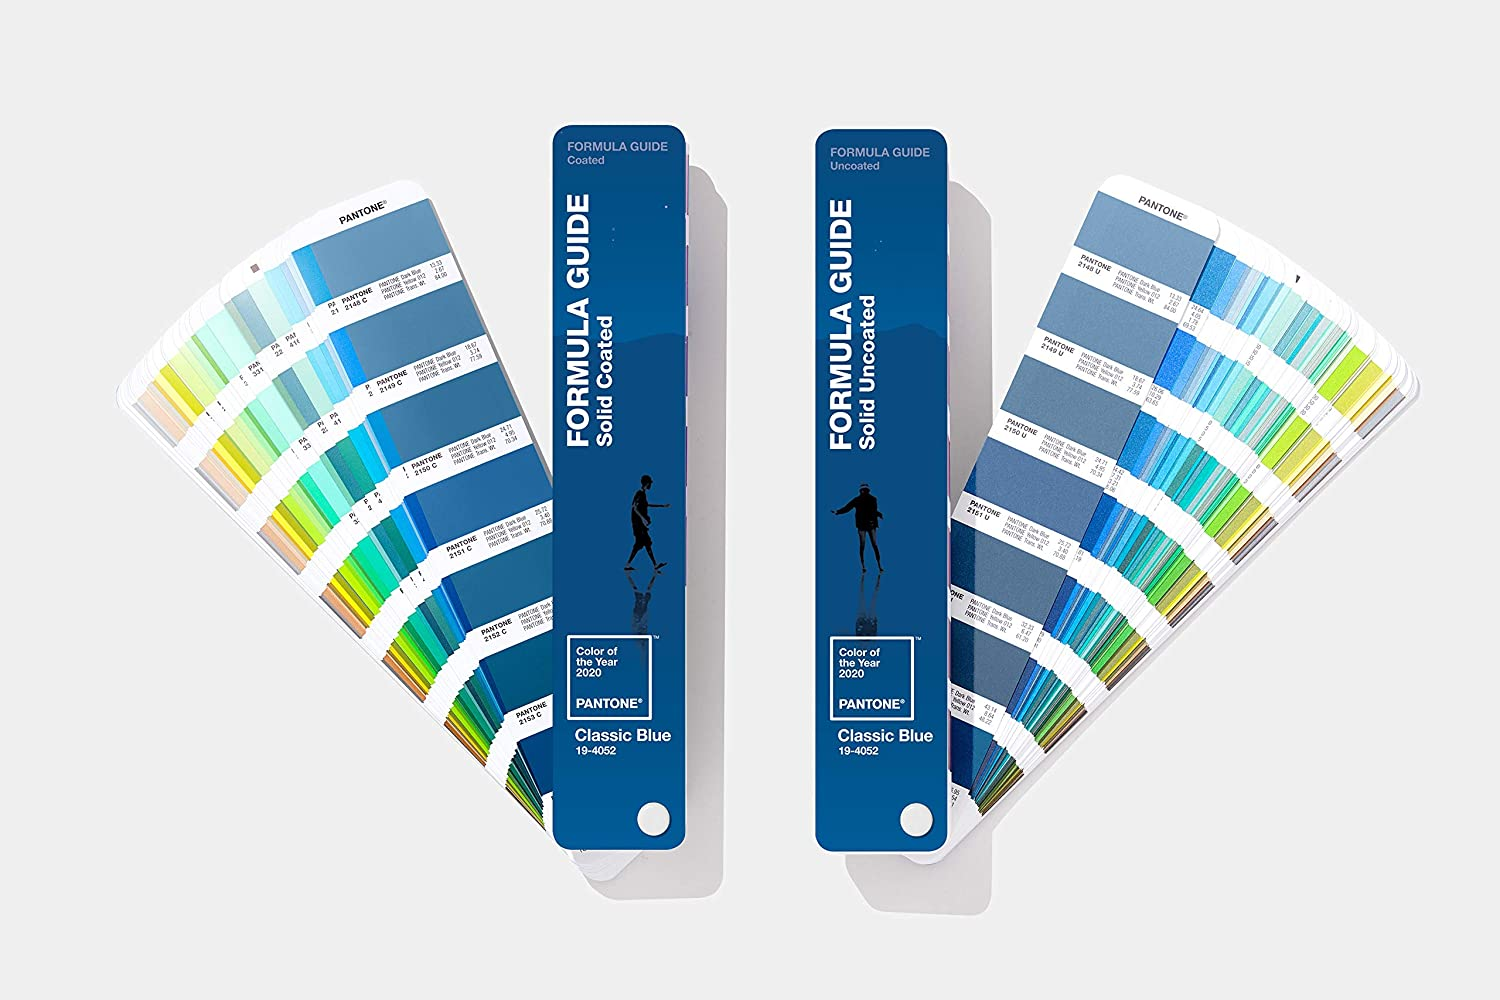 Pantone GP1601ACOY20 COY Limited Edition, Formula Guide Set - COTY 2020